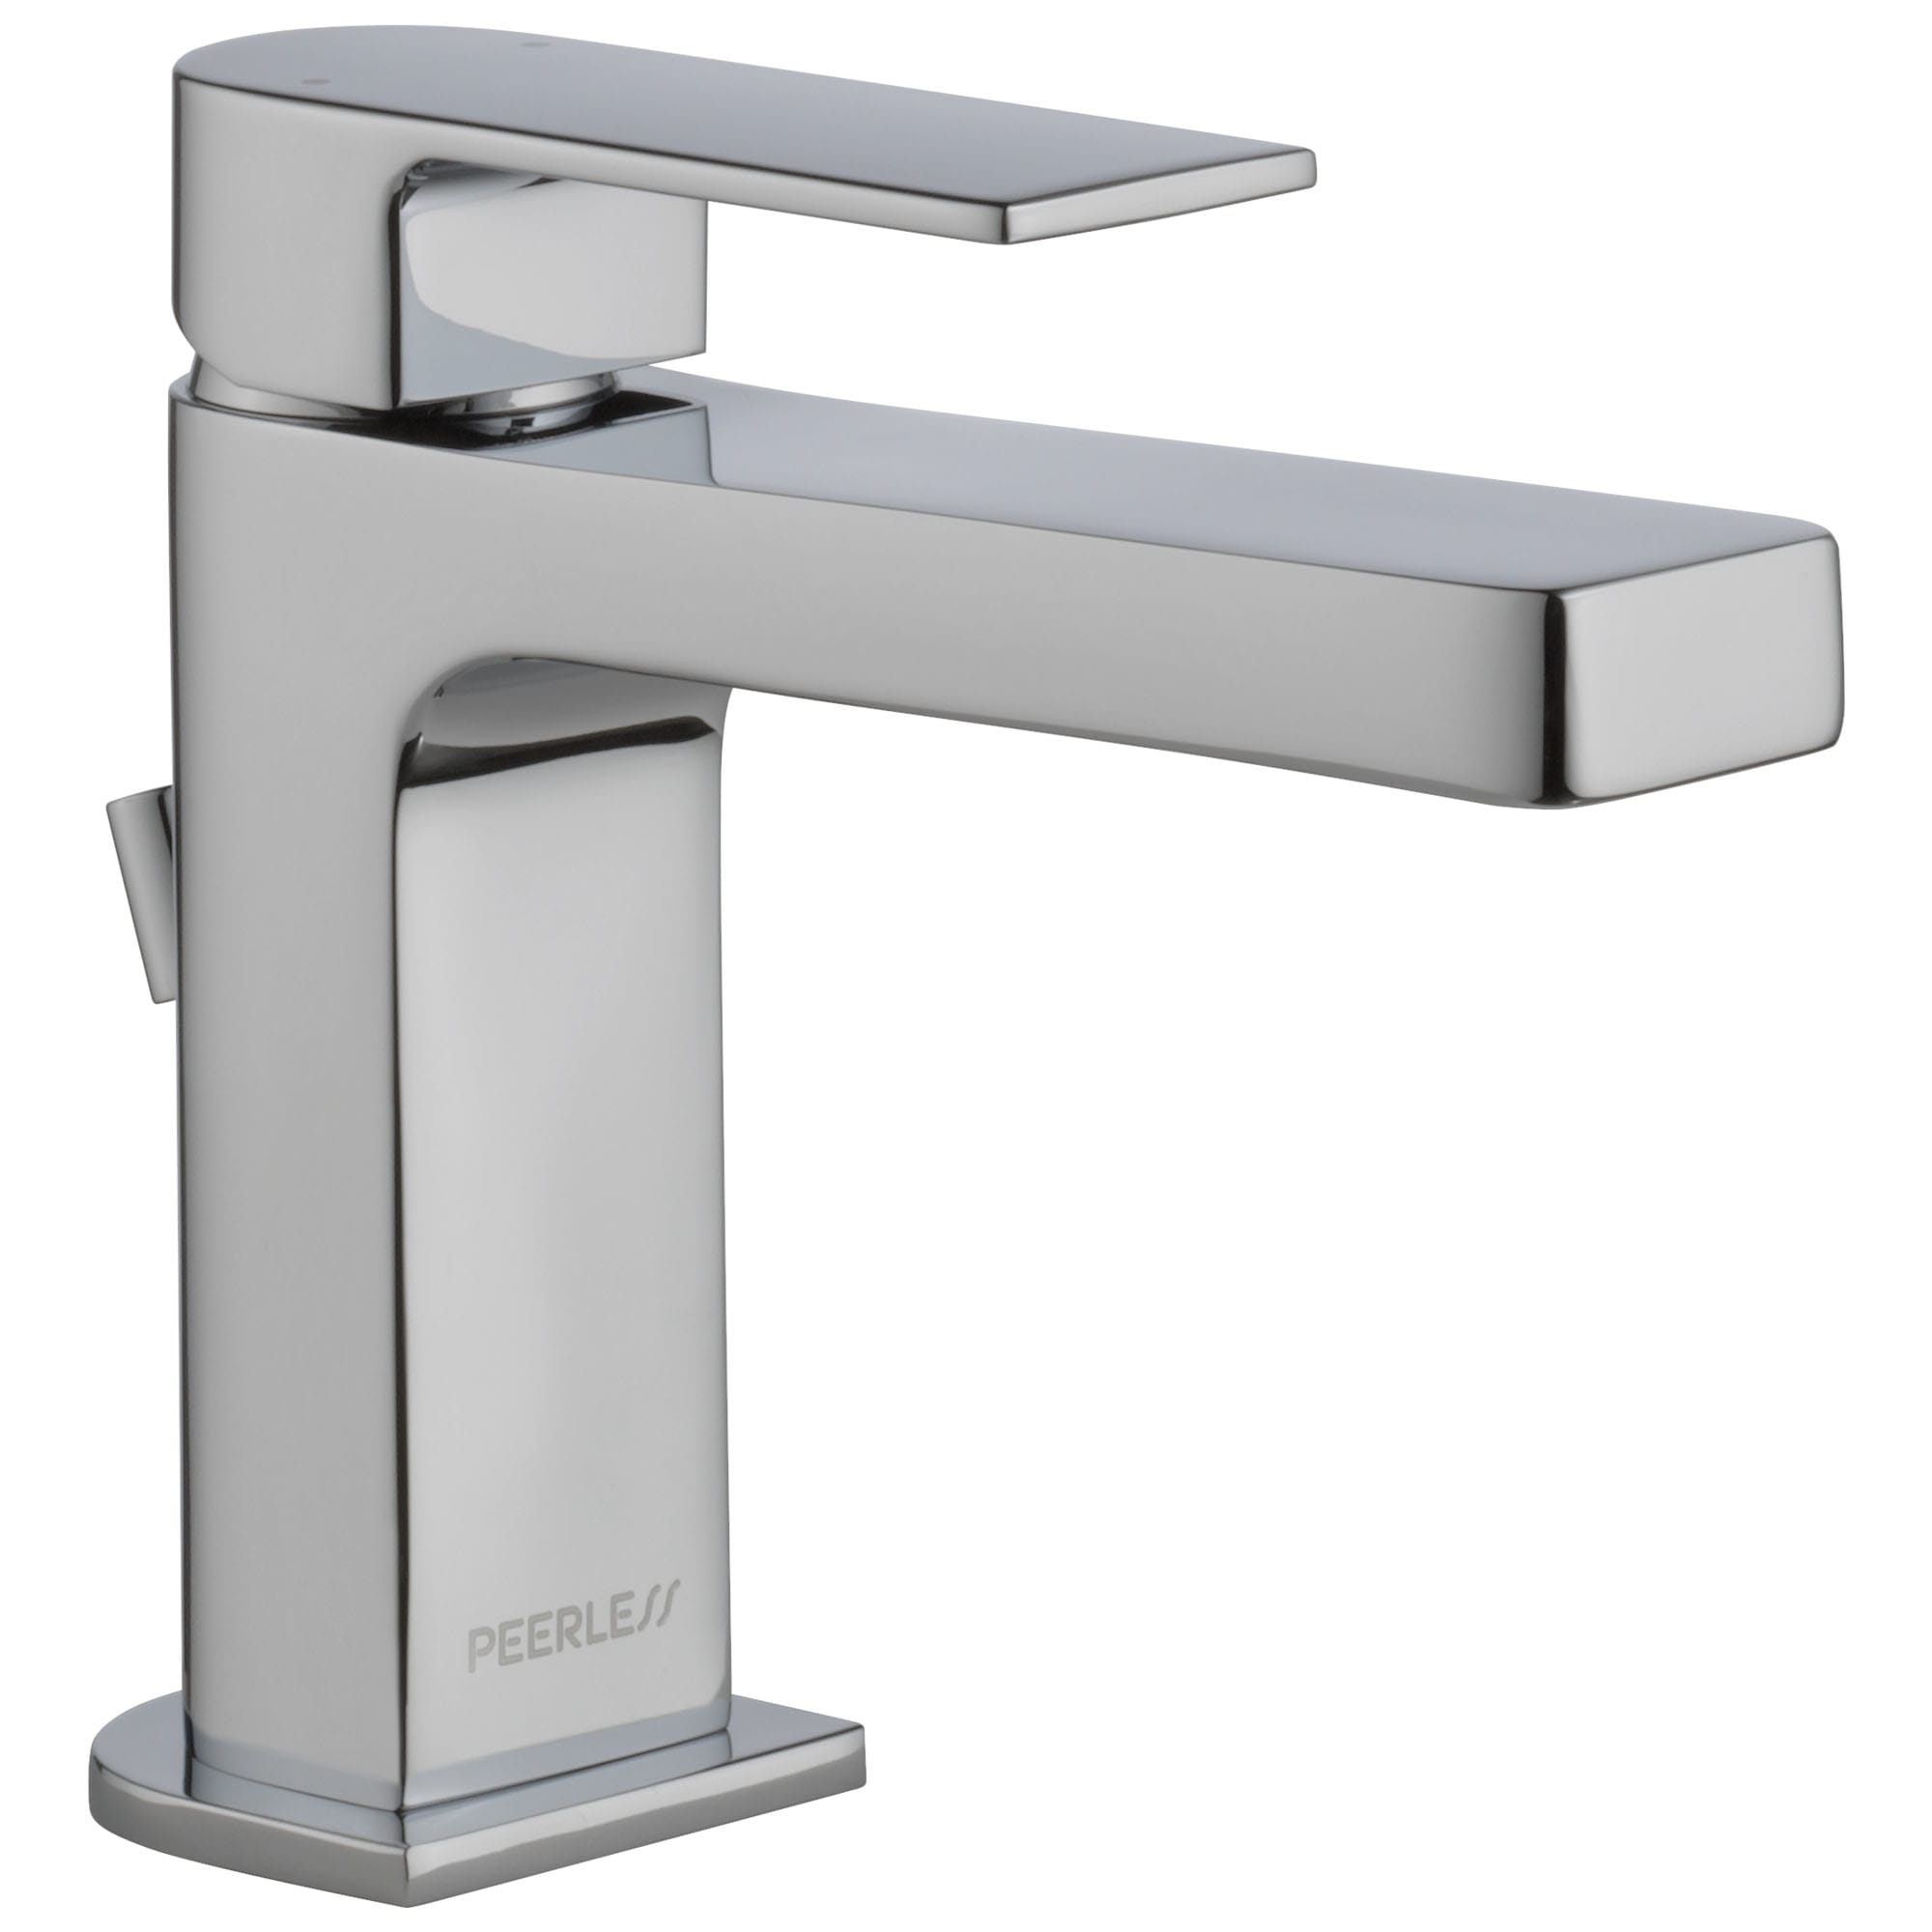 Peerless P1519lf 0 5 Chrome Xander 0 5 Gpm Single Hole Bathroom Faucet With Pop Up Drain Assembly Faucet Com